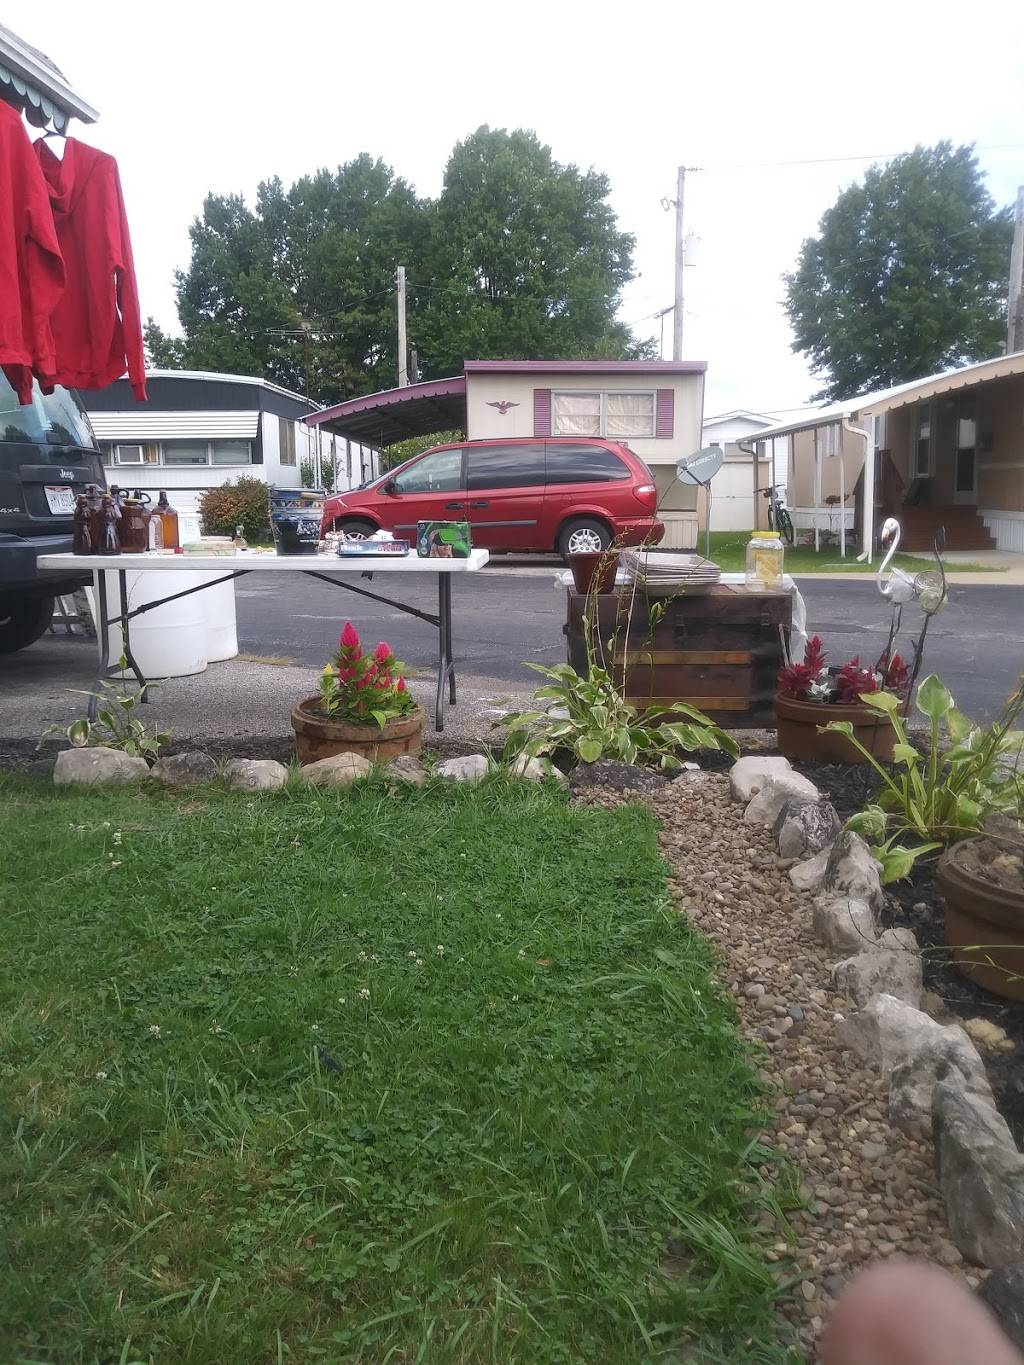 Millers Mobile Home Pk LLC - rv park  | Photo 2 of 4 | Address: 8125 Russell Ln, Cleveland, OH 44144, USA | Phone: (216) 651-5400